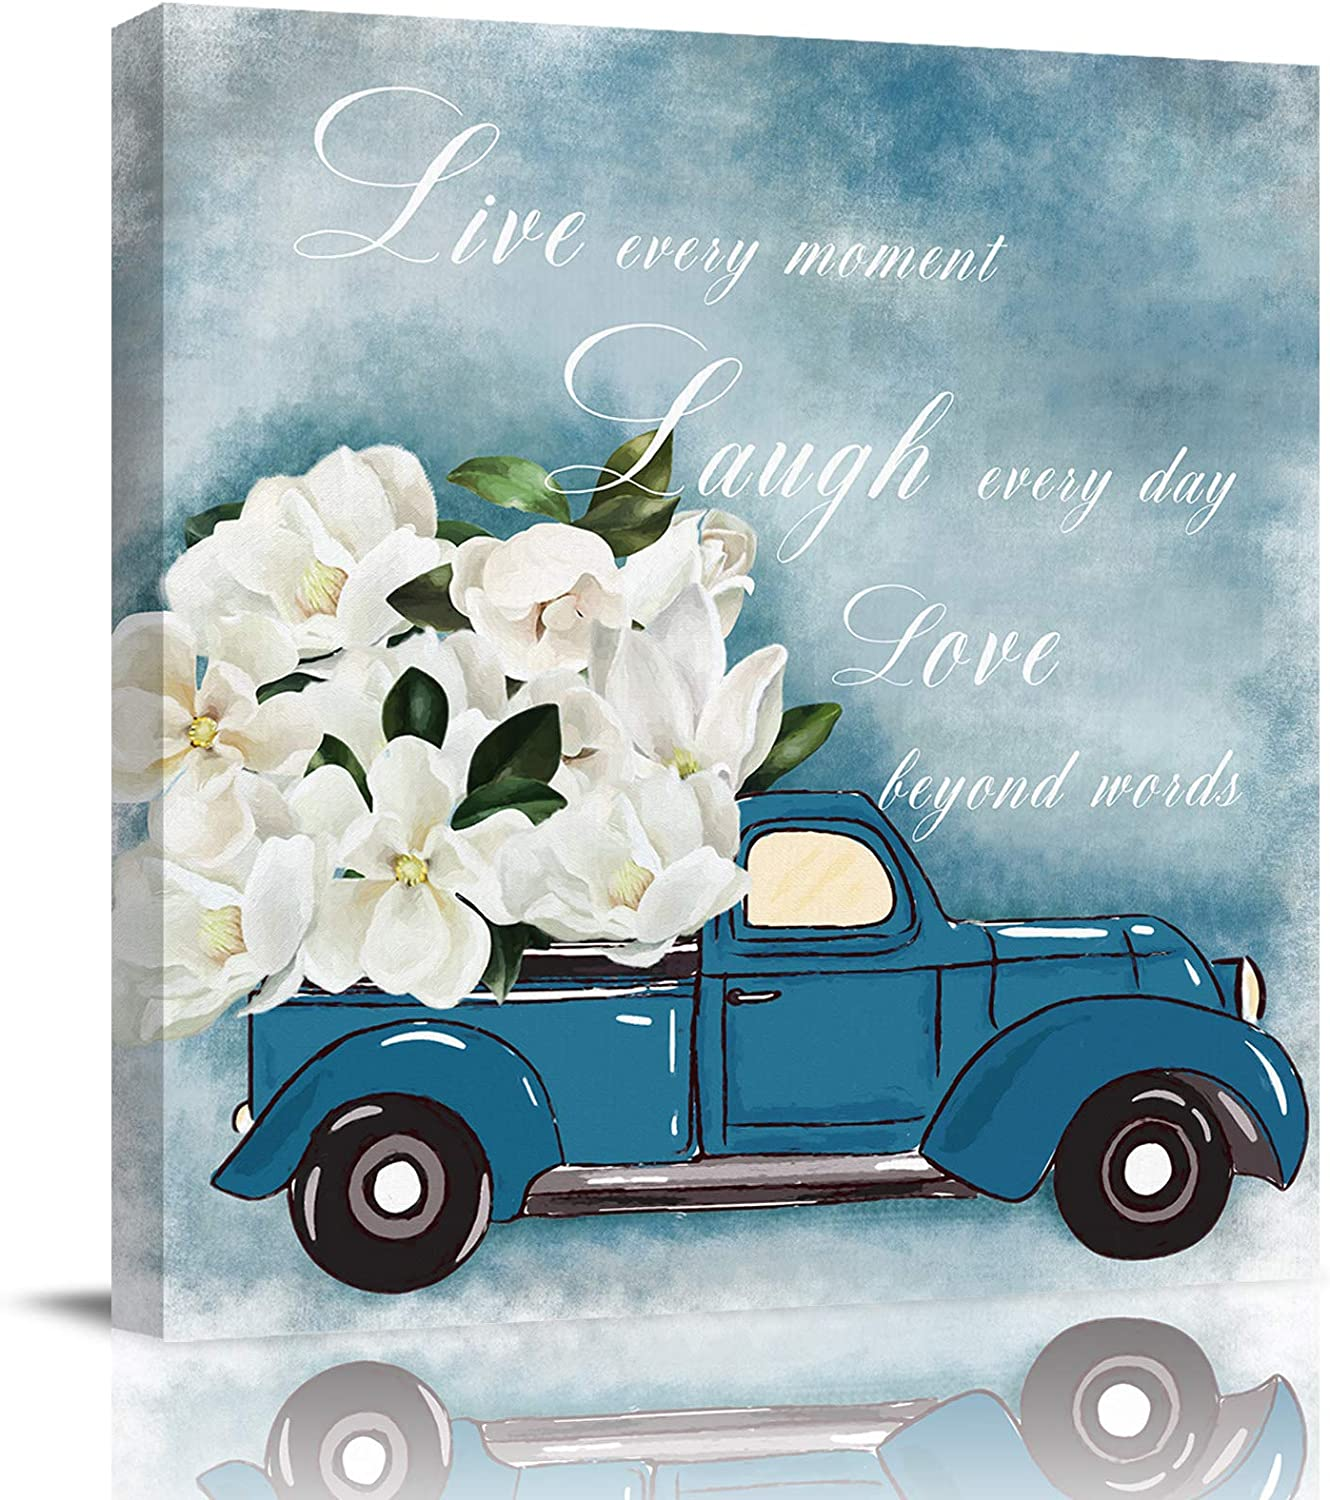 Bathroom Decor Canvas Wall Art, Blue Truck Carrying Magnolia Flowers Quotes Live Laugh Love Canvas Prints Gallery Artworks for Bedroom, Stretched and Framed Ready to Hang, 12x12 Inch Wall Decor